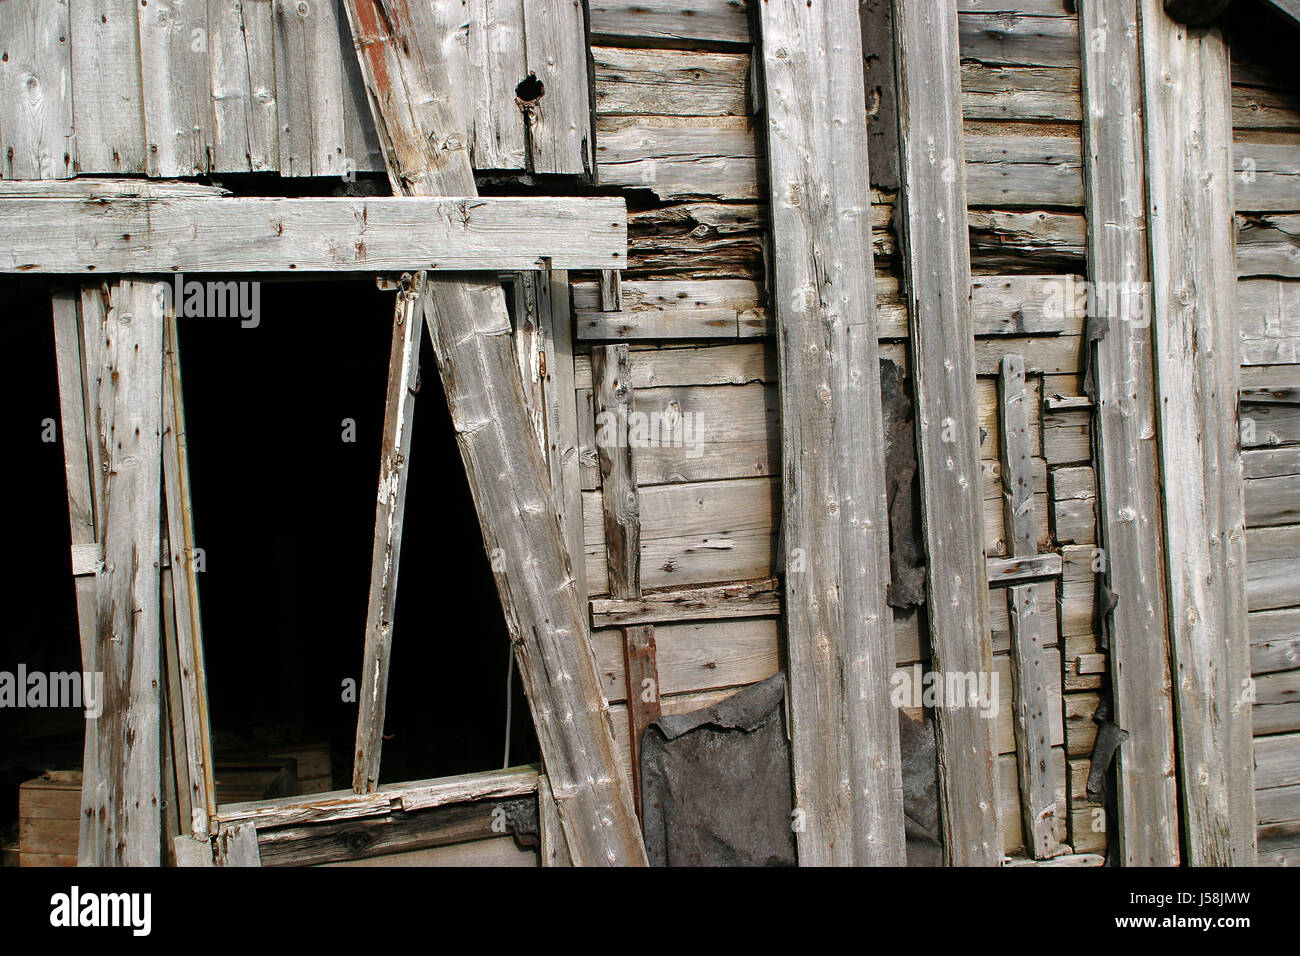 framehouse hovel rotten canvas blowzed boarding building material expiry date Stock Photo